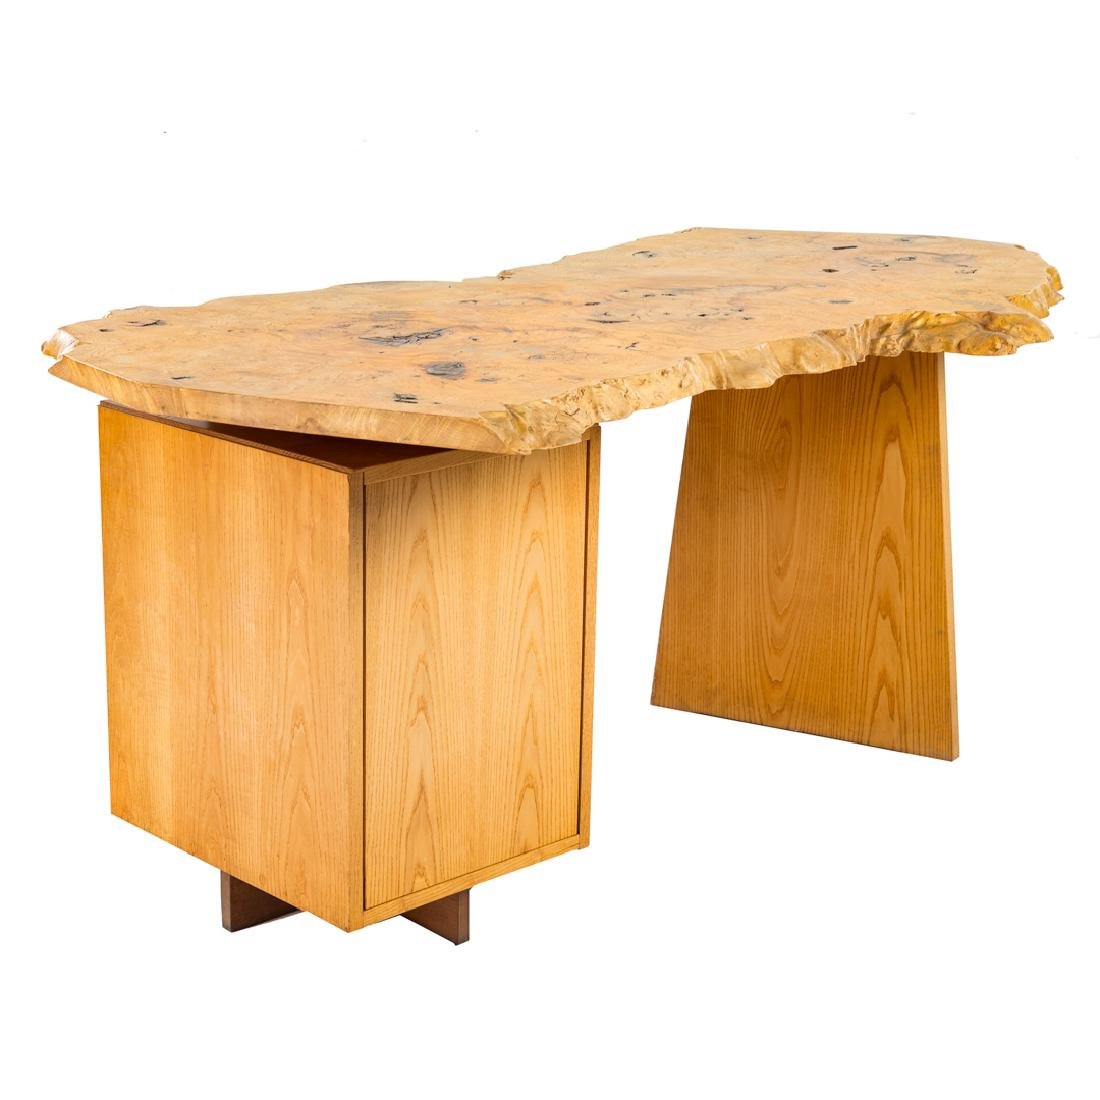 George Nakashima Custom Slab Top Pedestal Desk - 5